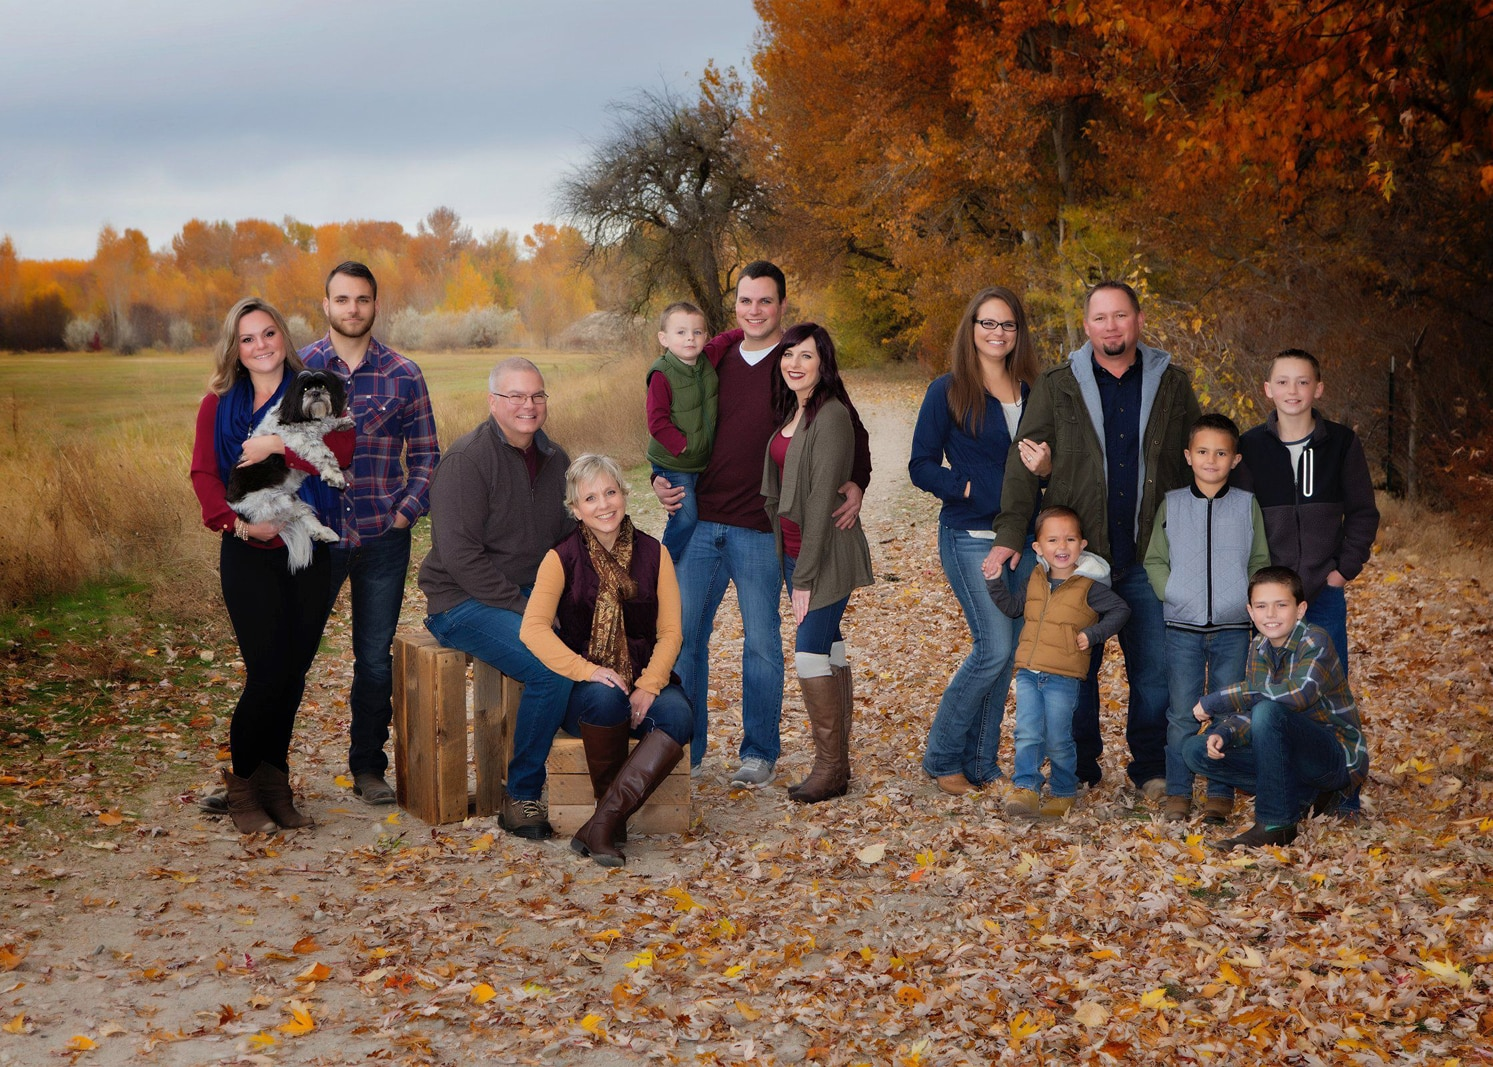 Family together at the edge of woods